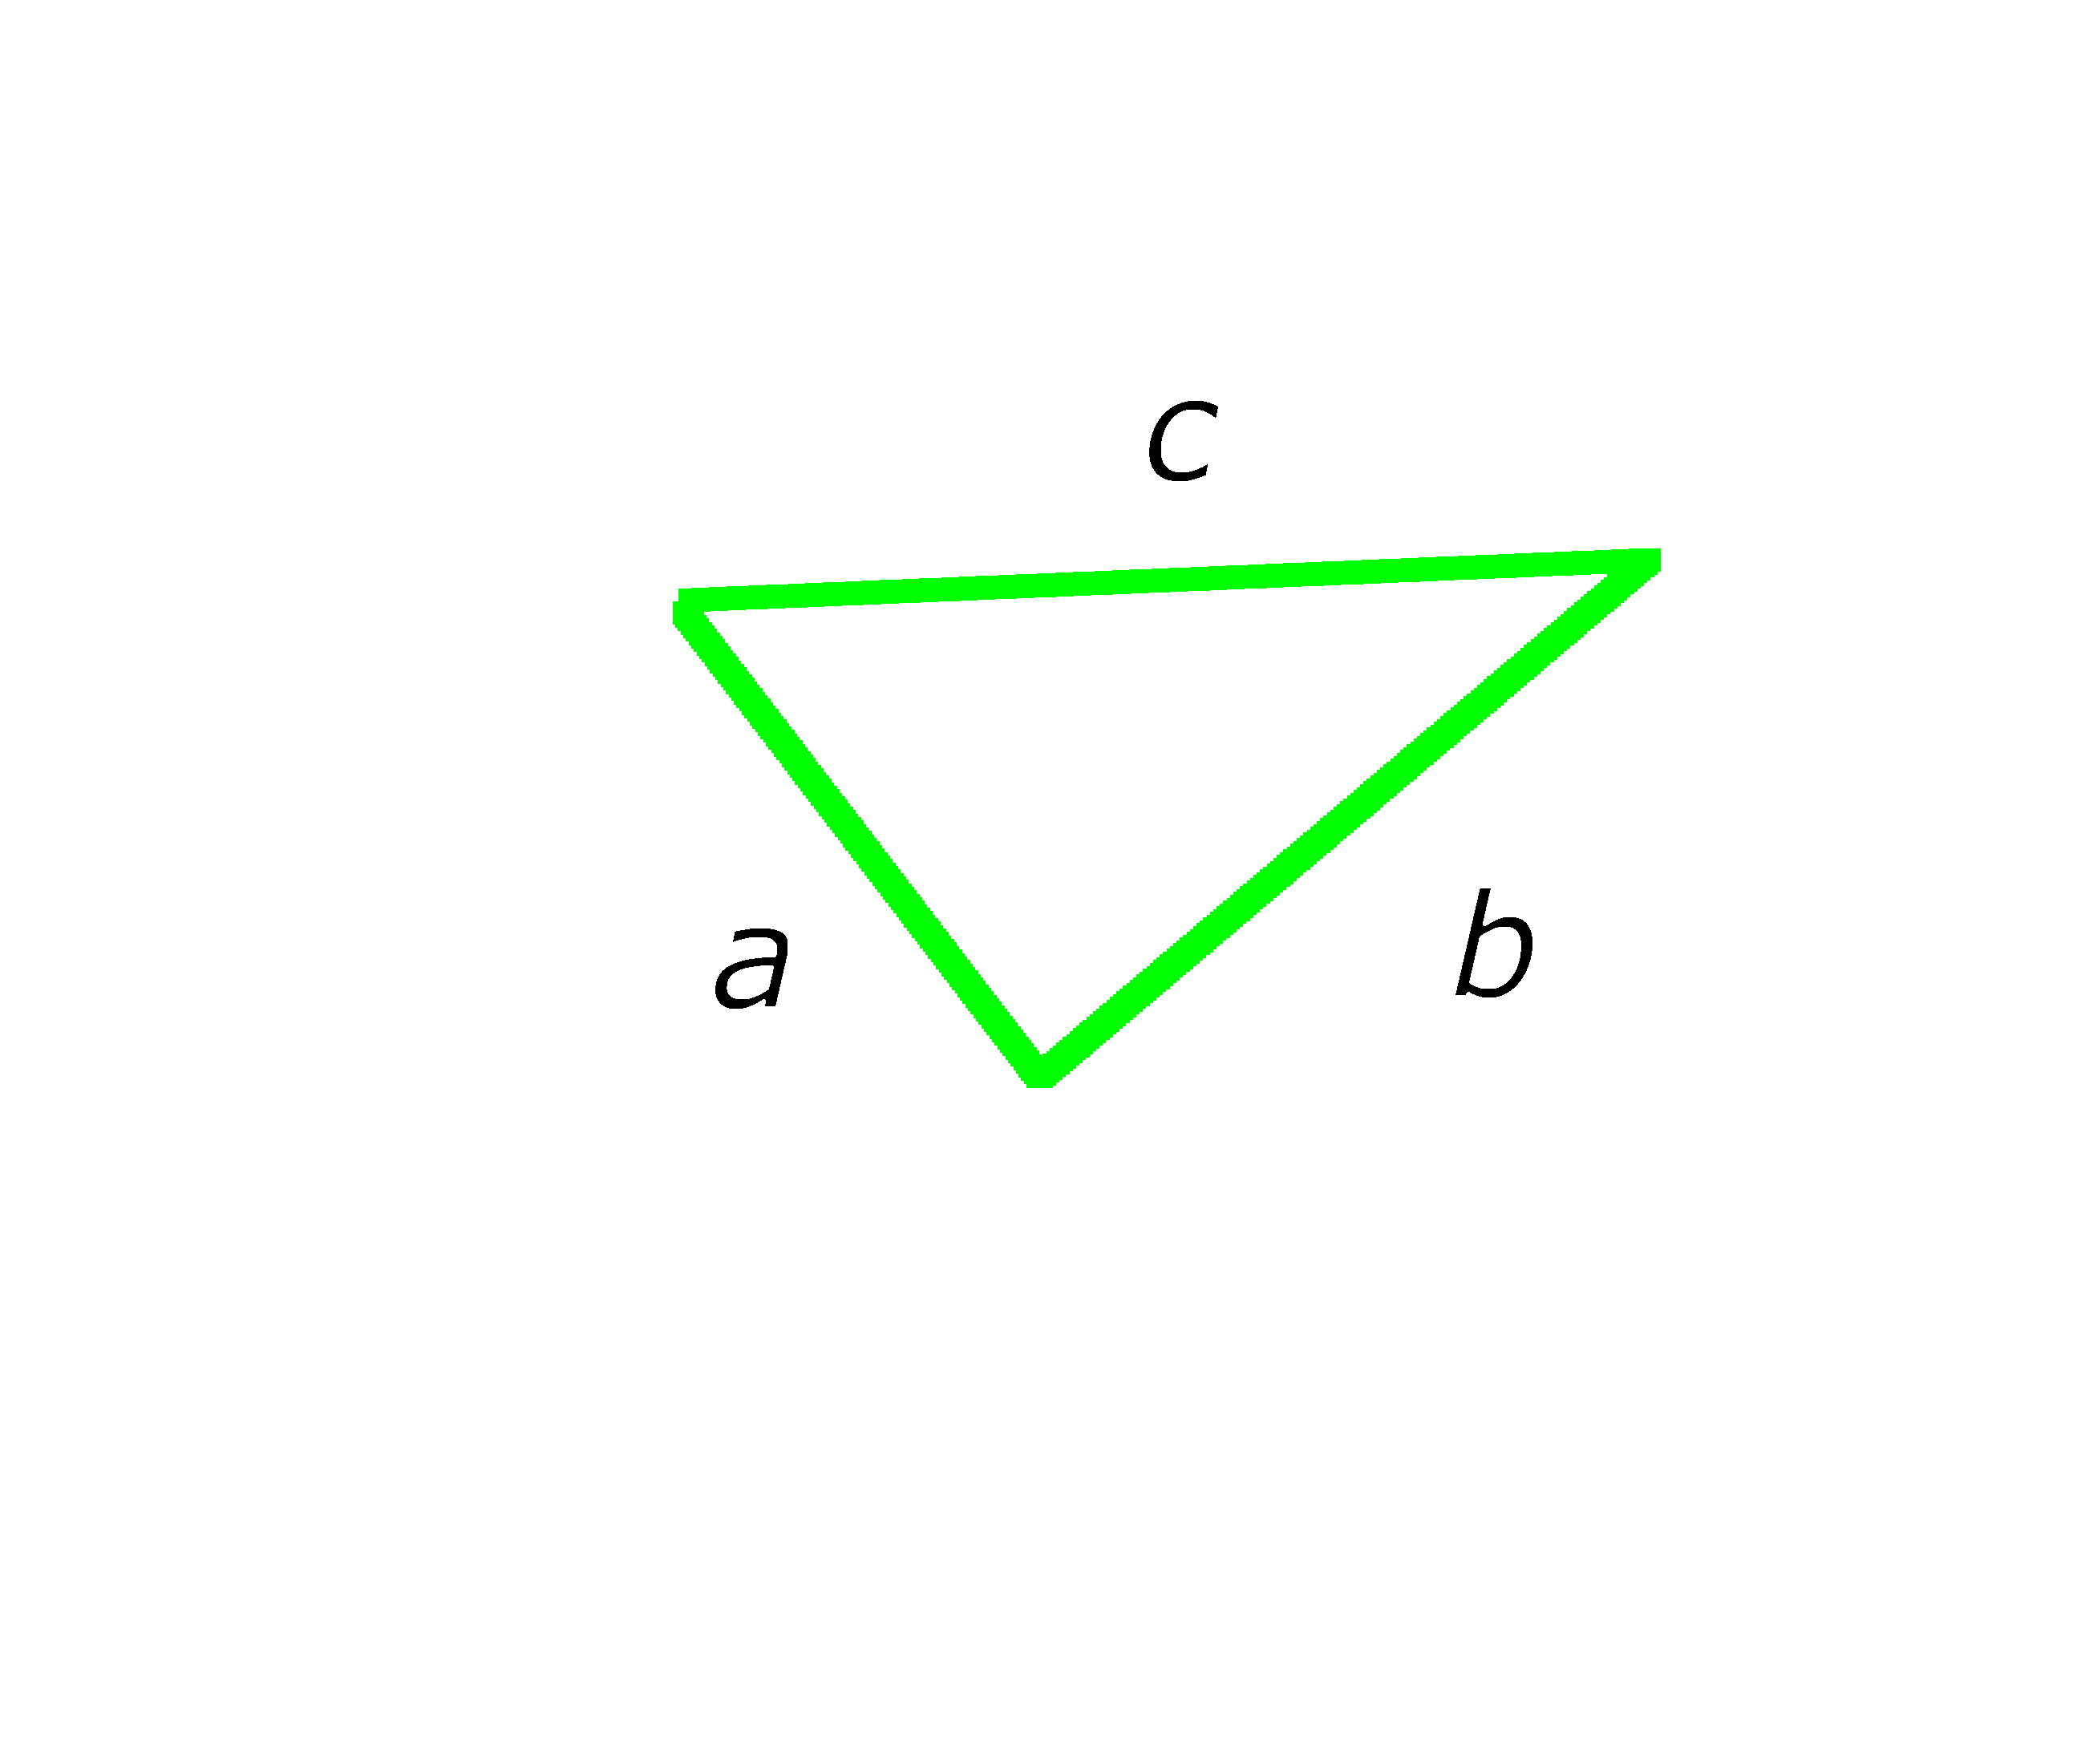 drawing of a triangle abc